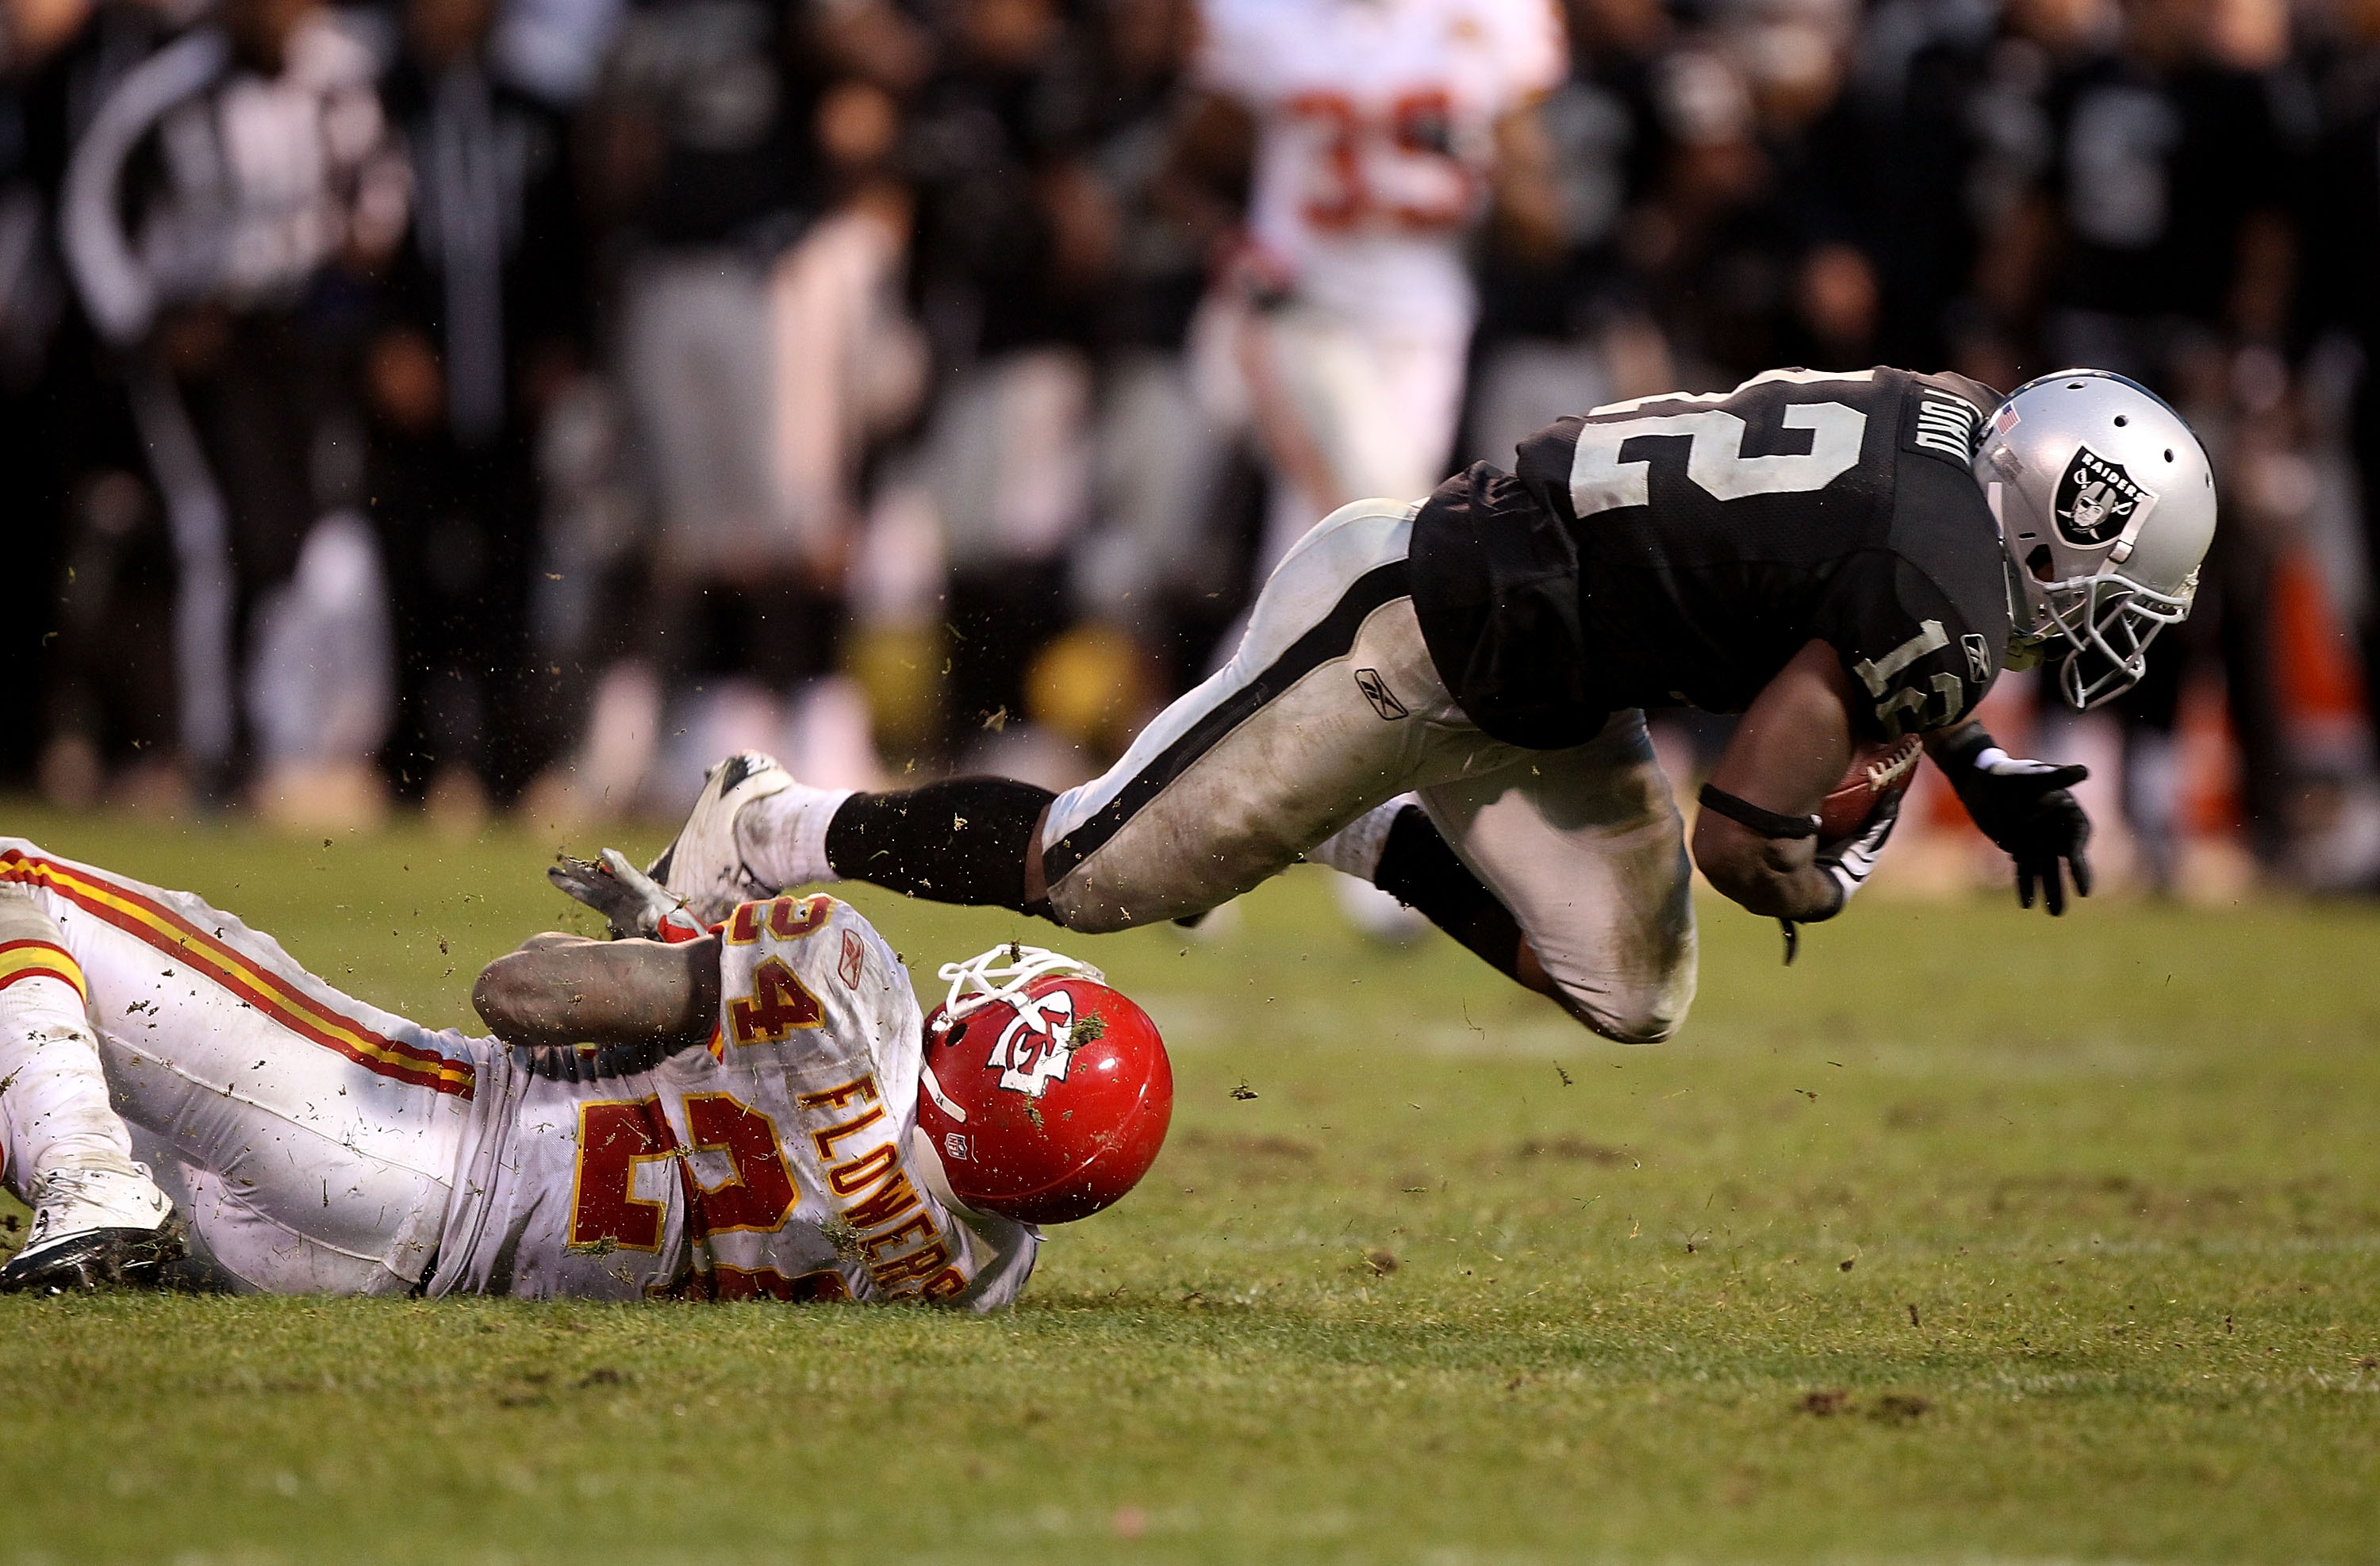 OAKLAND, CA - NOVEMBER 07:  Jacoby Ford #12 of the Oakland Raiders catches a pass over Brandon Flowers #24 of the Kansas City Chiefs in overtime during an NFL game at Oakland-Alameda County Coliseum on November 7, 2010 in Oakland, California.  (Photo by J